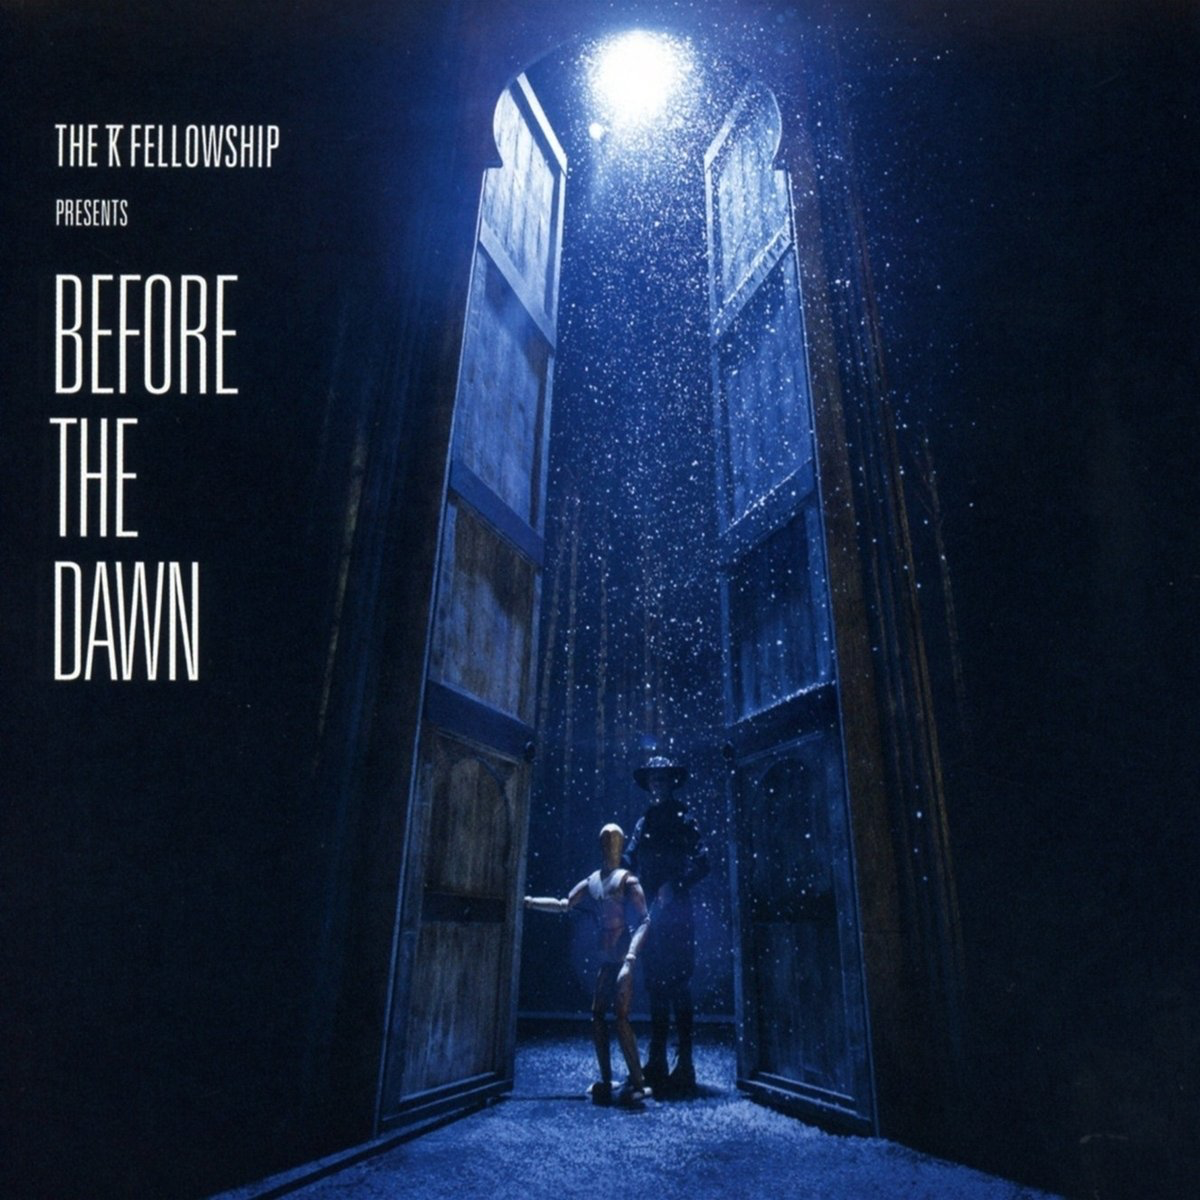 Before the Dawn